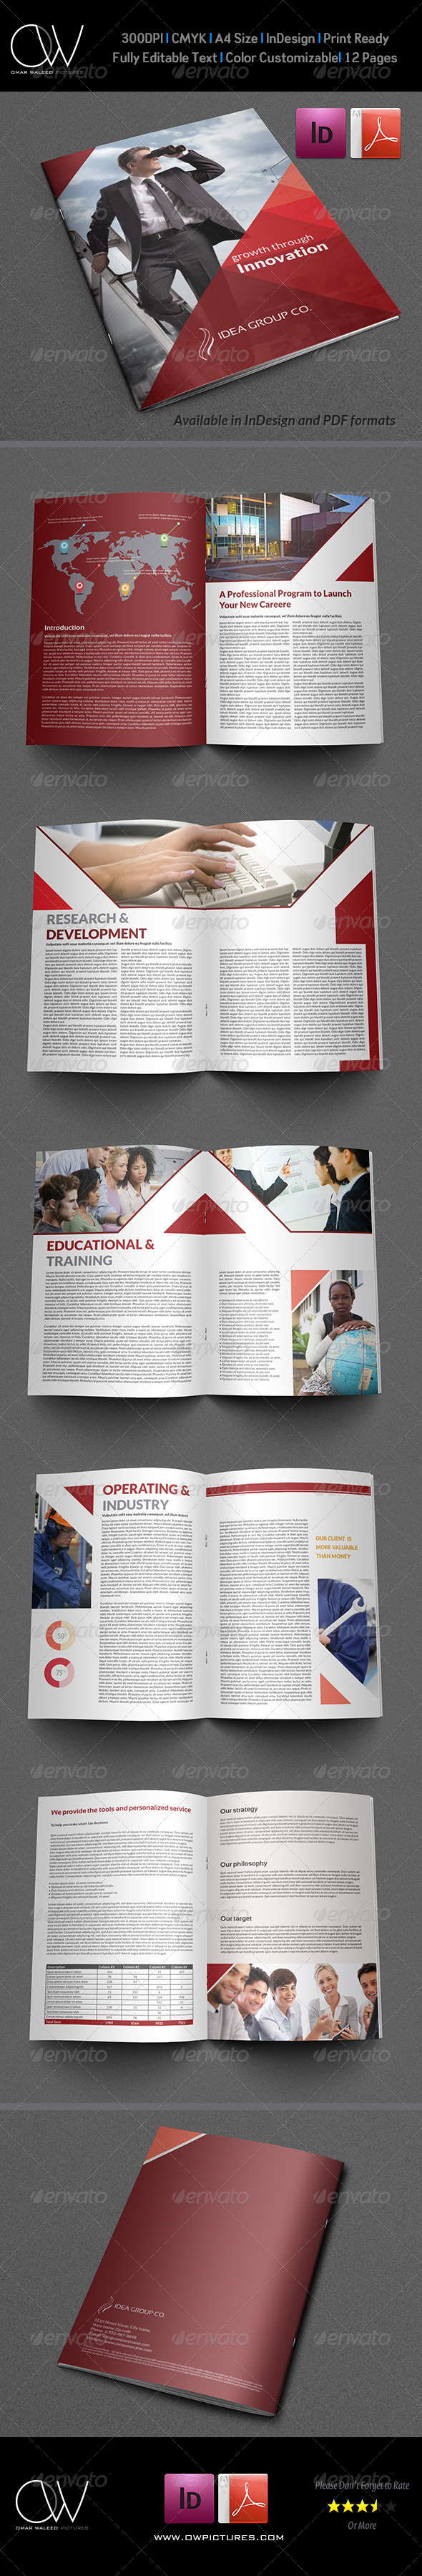 Company Brochure Template Vol.14 - 12 Pages - Corporate Brochures